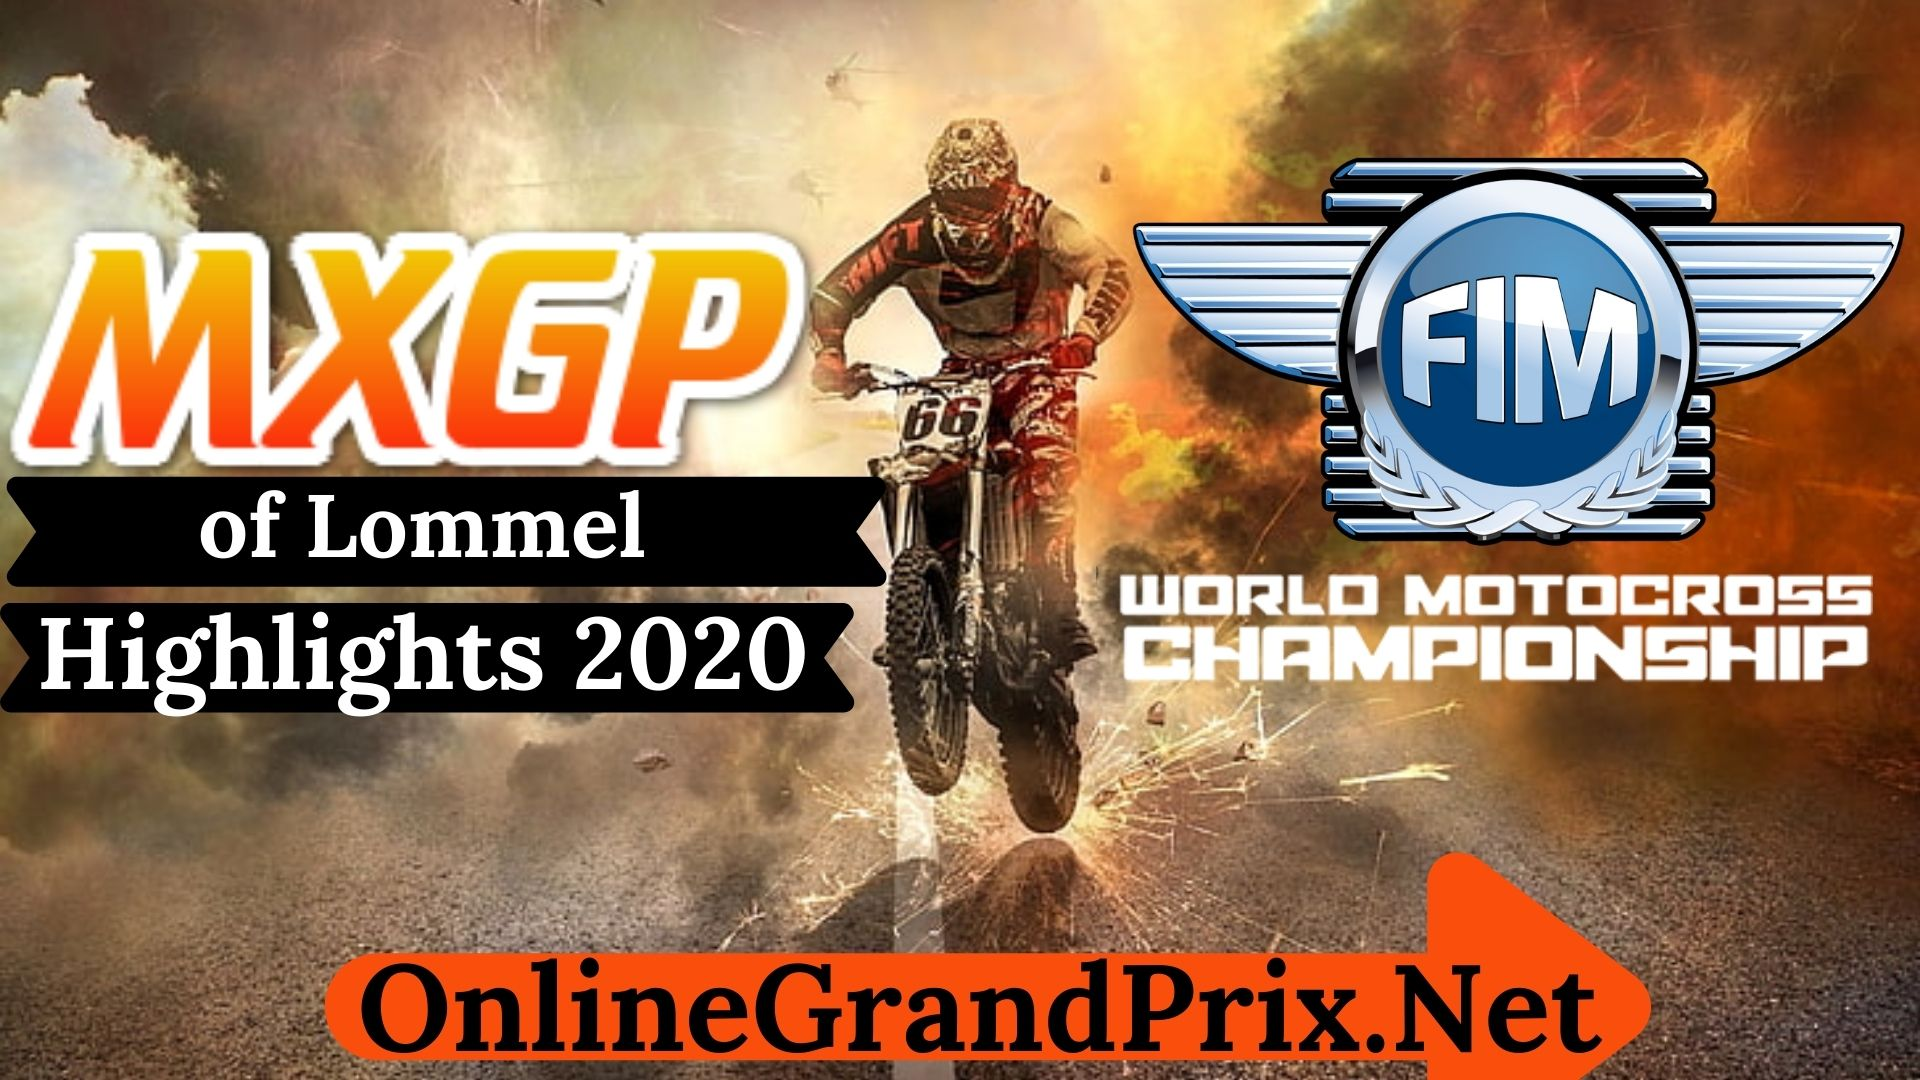 MXGP of Lommel Highlights 2020